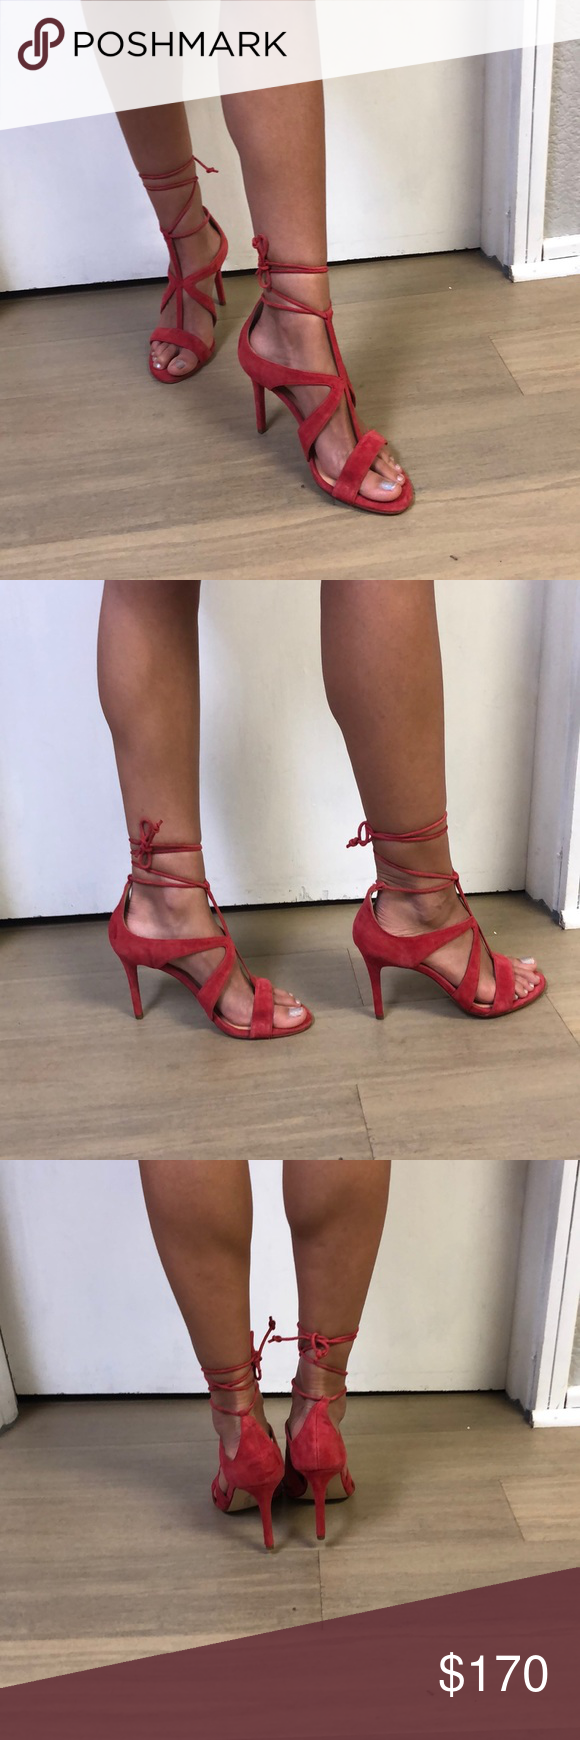 daa4594dc64592 Jordans · Sandal · Halston Heritage red suede ankle tie heel Brand New.  Never worn. Add an ambitious